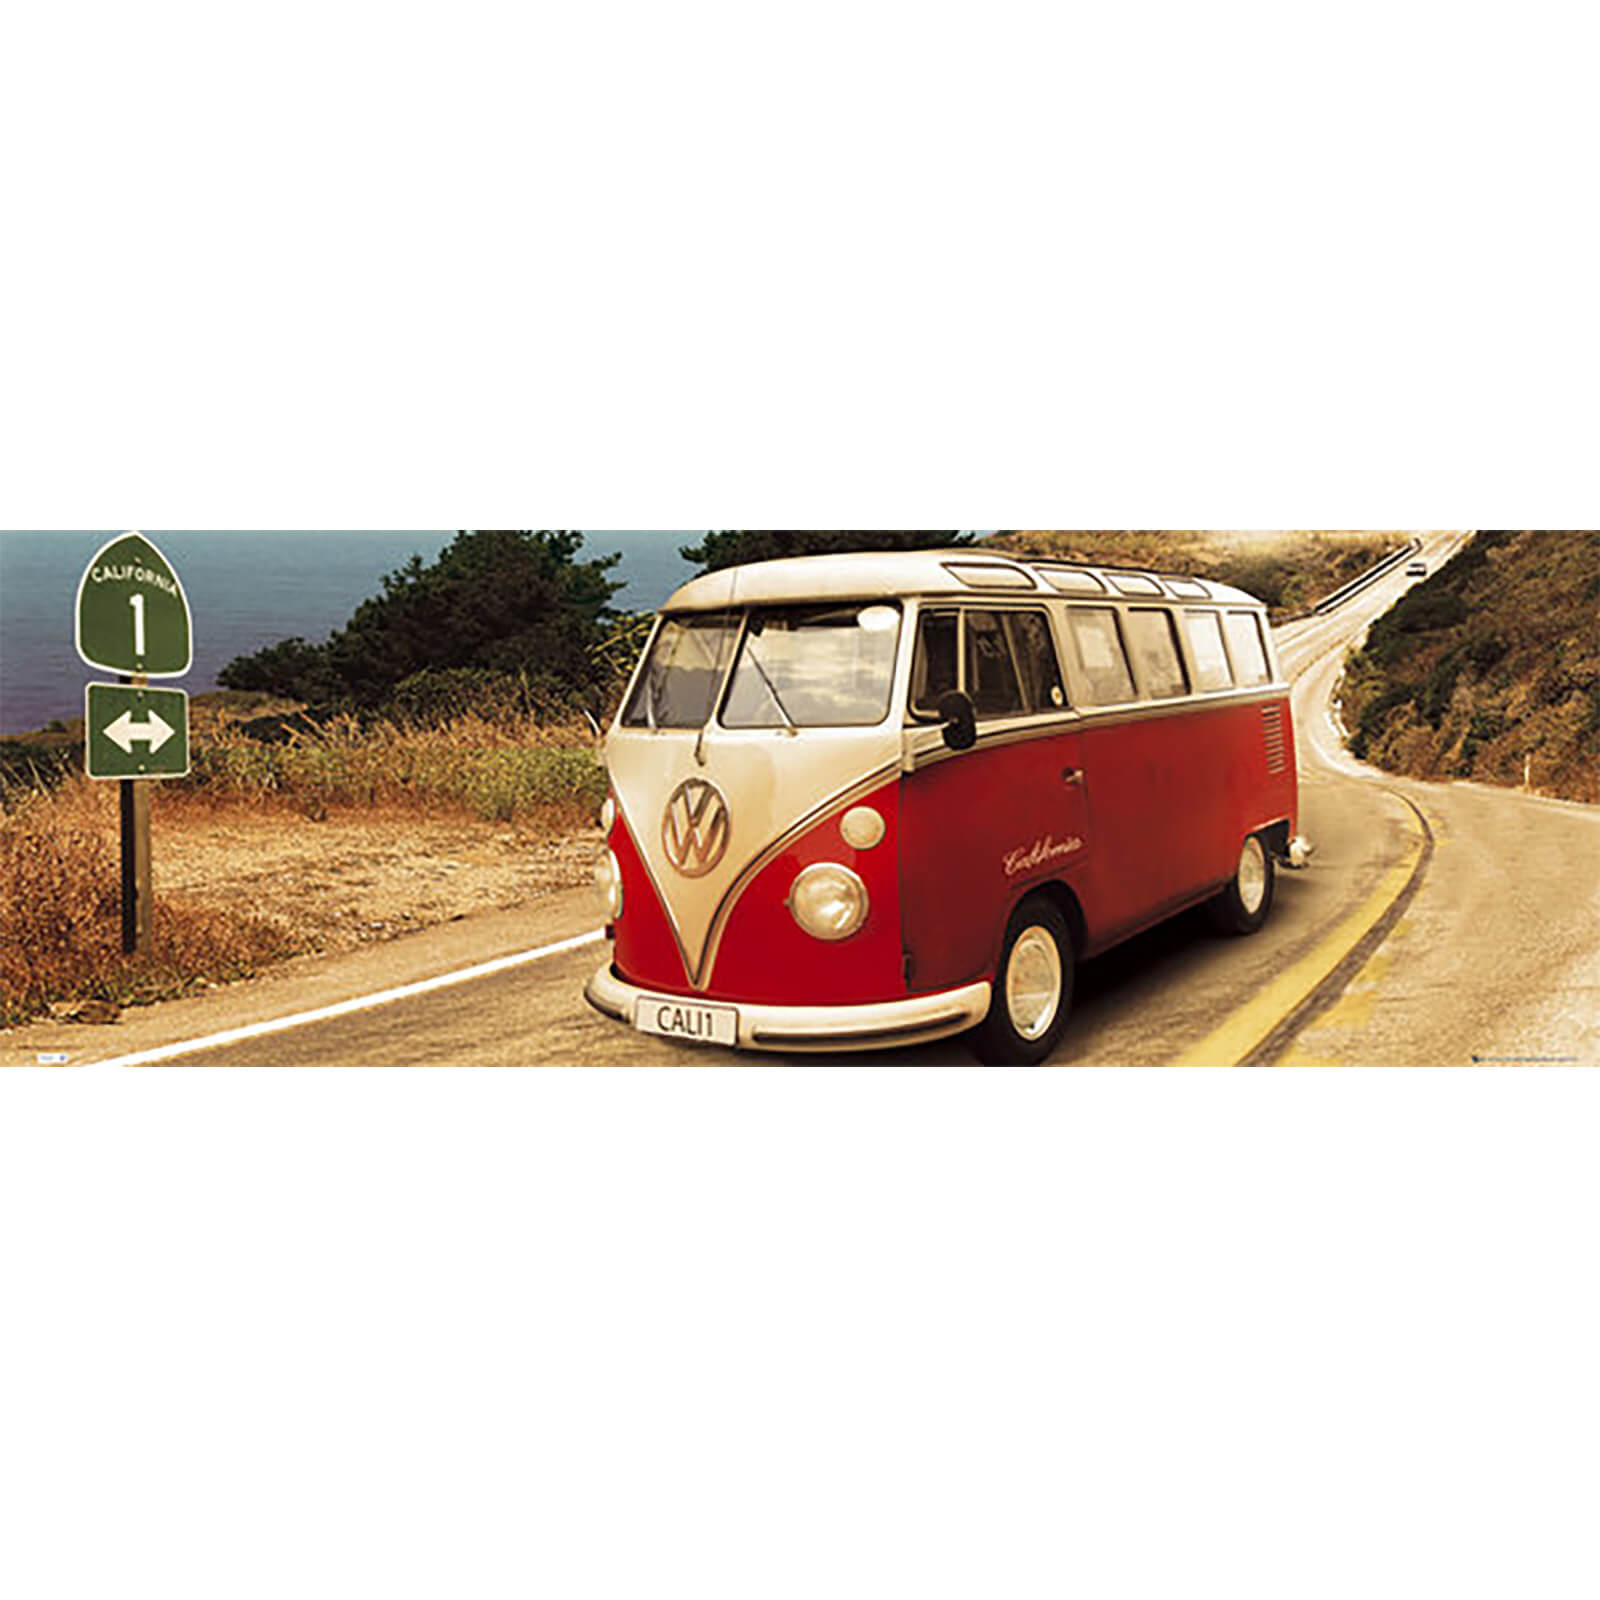 VW Californian Camper Route One - Door Poster - 53 x 158cm